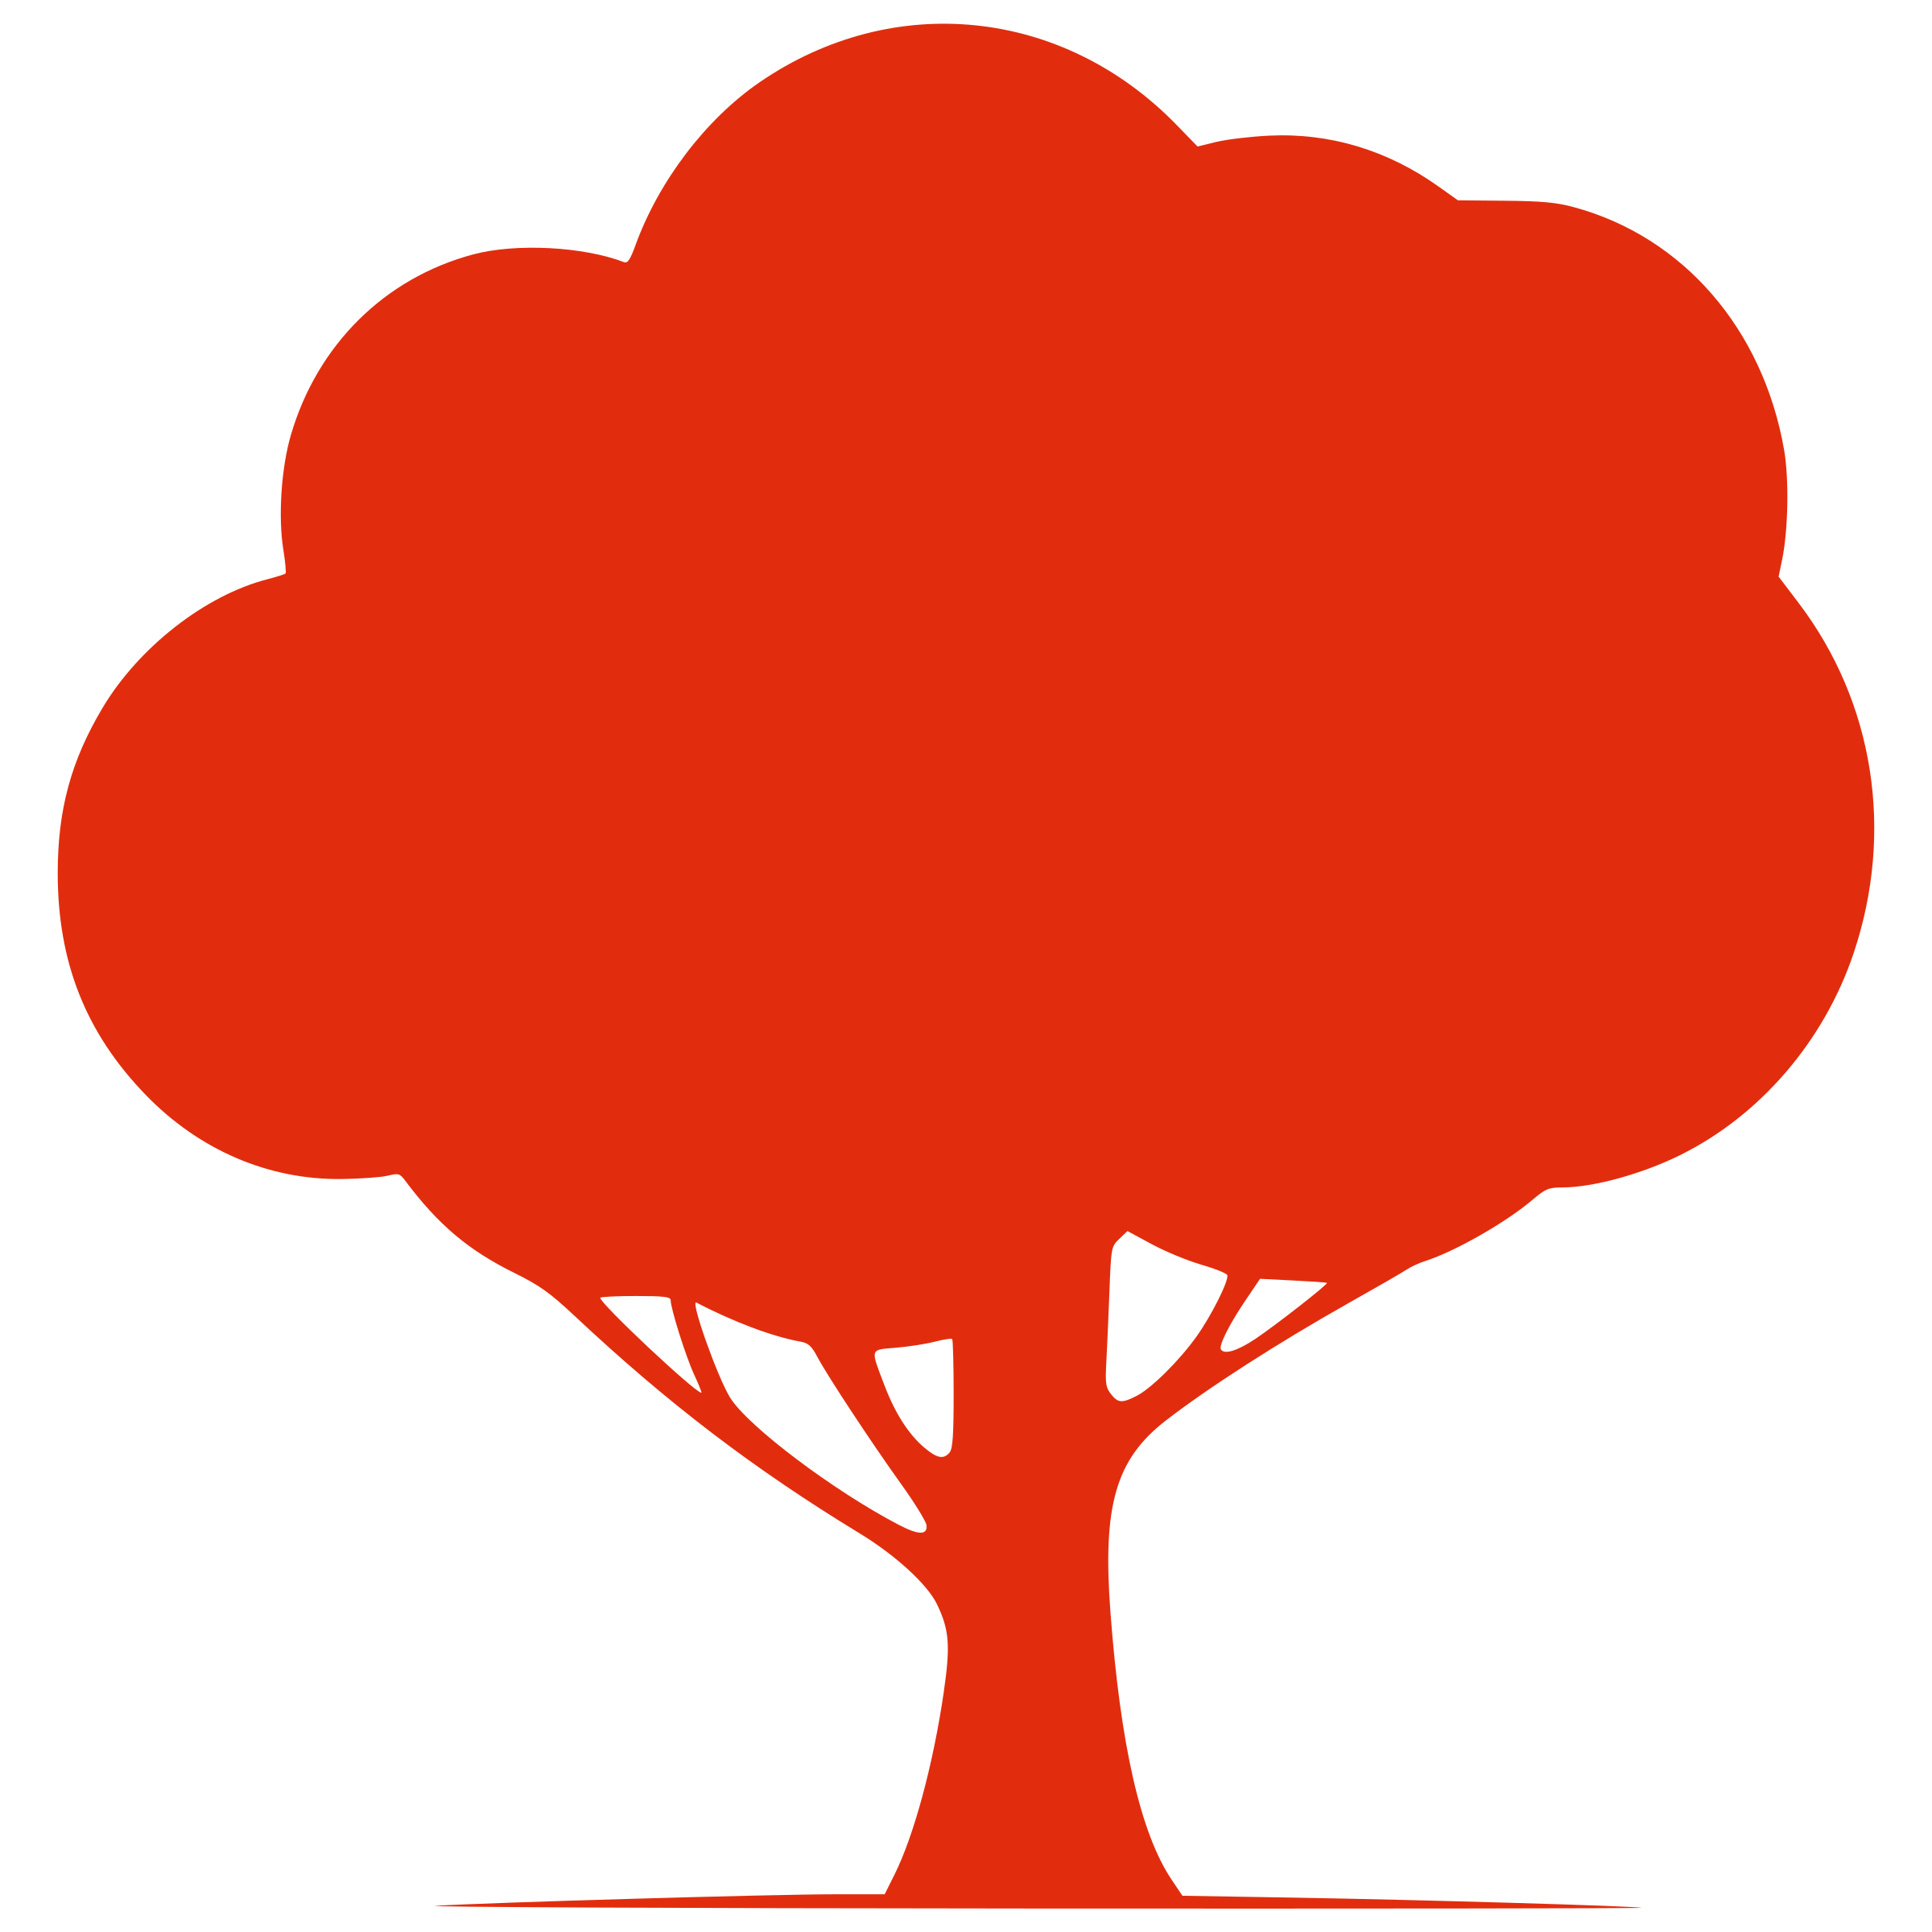 Lake clipart trees. Tree silhouette at getdrawings